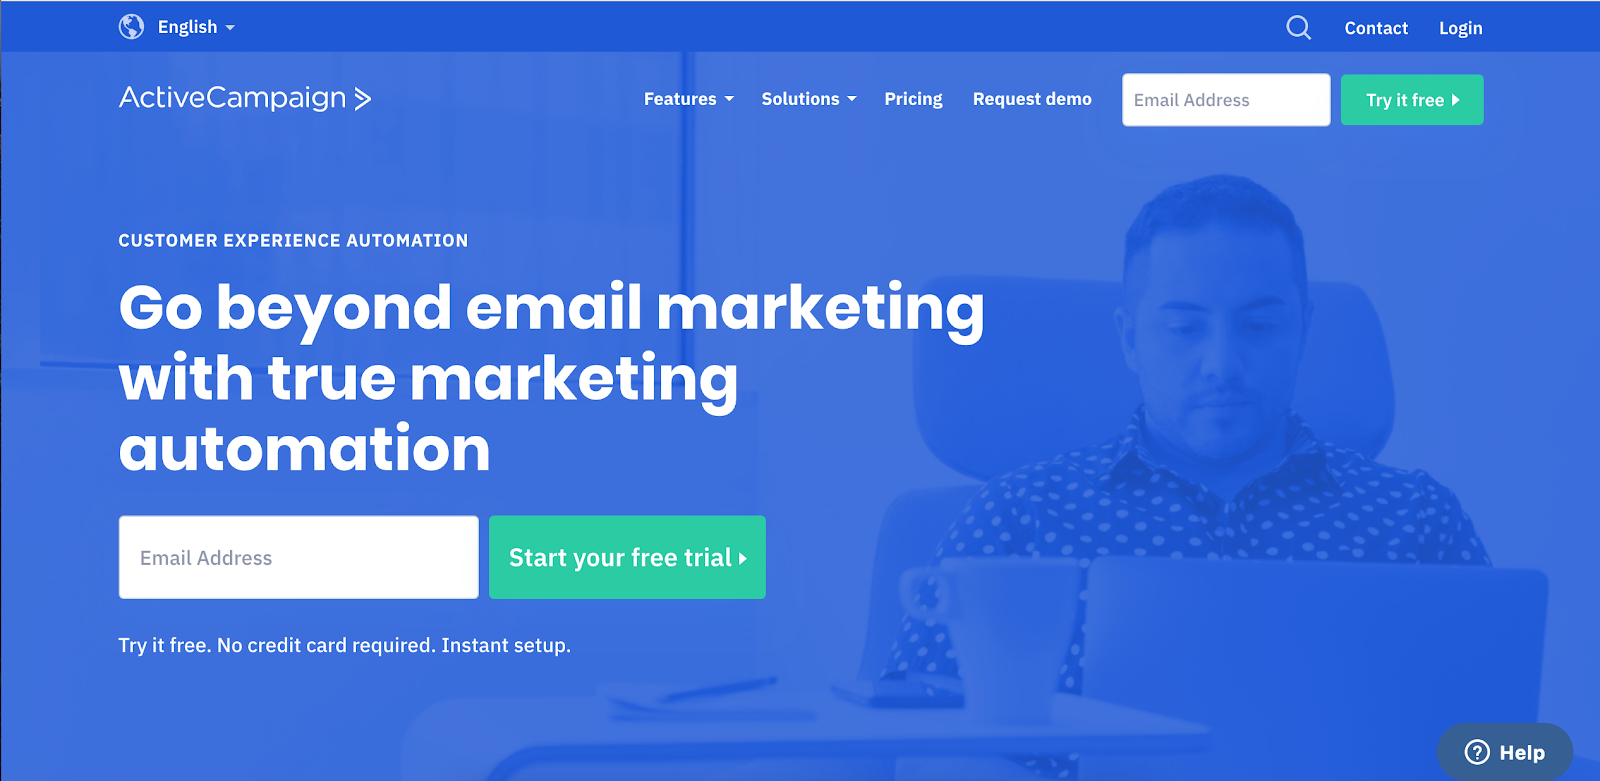 Top Marketing Tool Example #15 - ActiveCampaign | 16 Powerful Marketing Tools You Haven't Considered (But Probably Should)